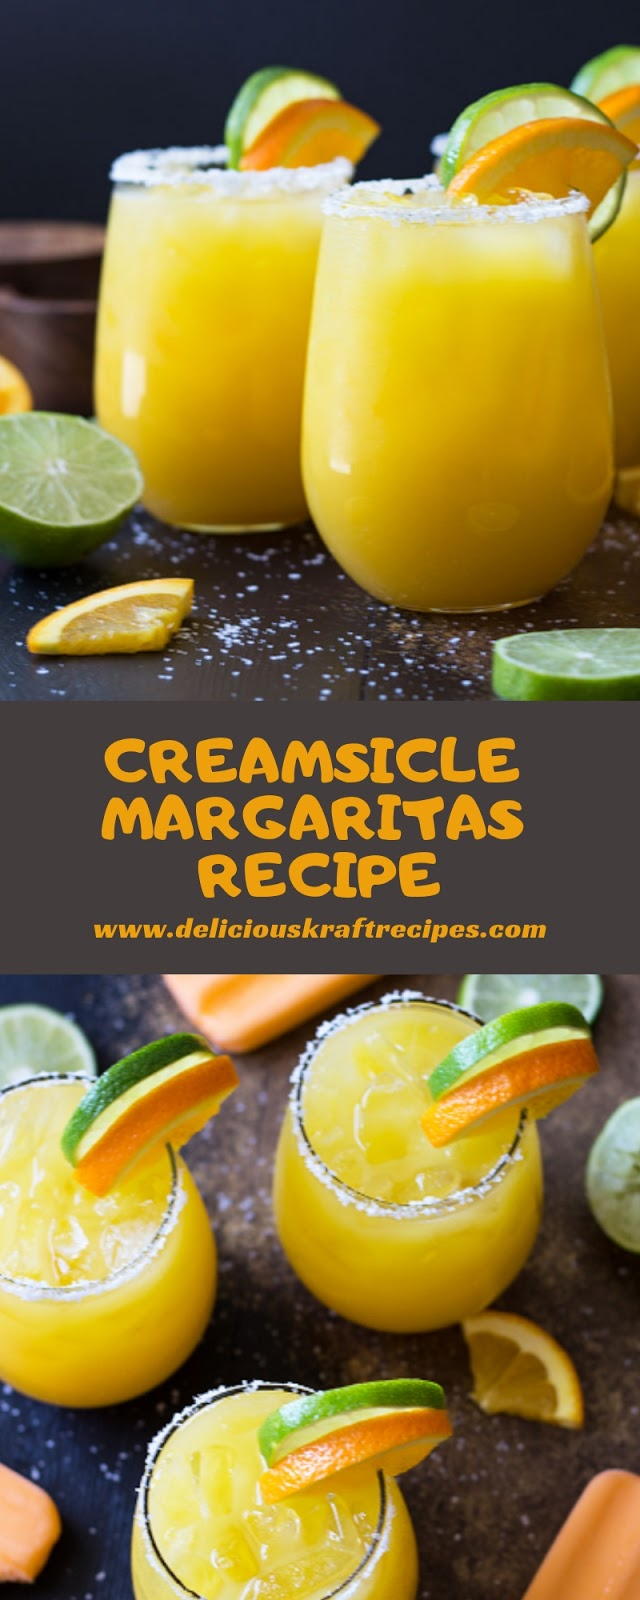 CREAMSICLE MARGARITAS RECIPE